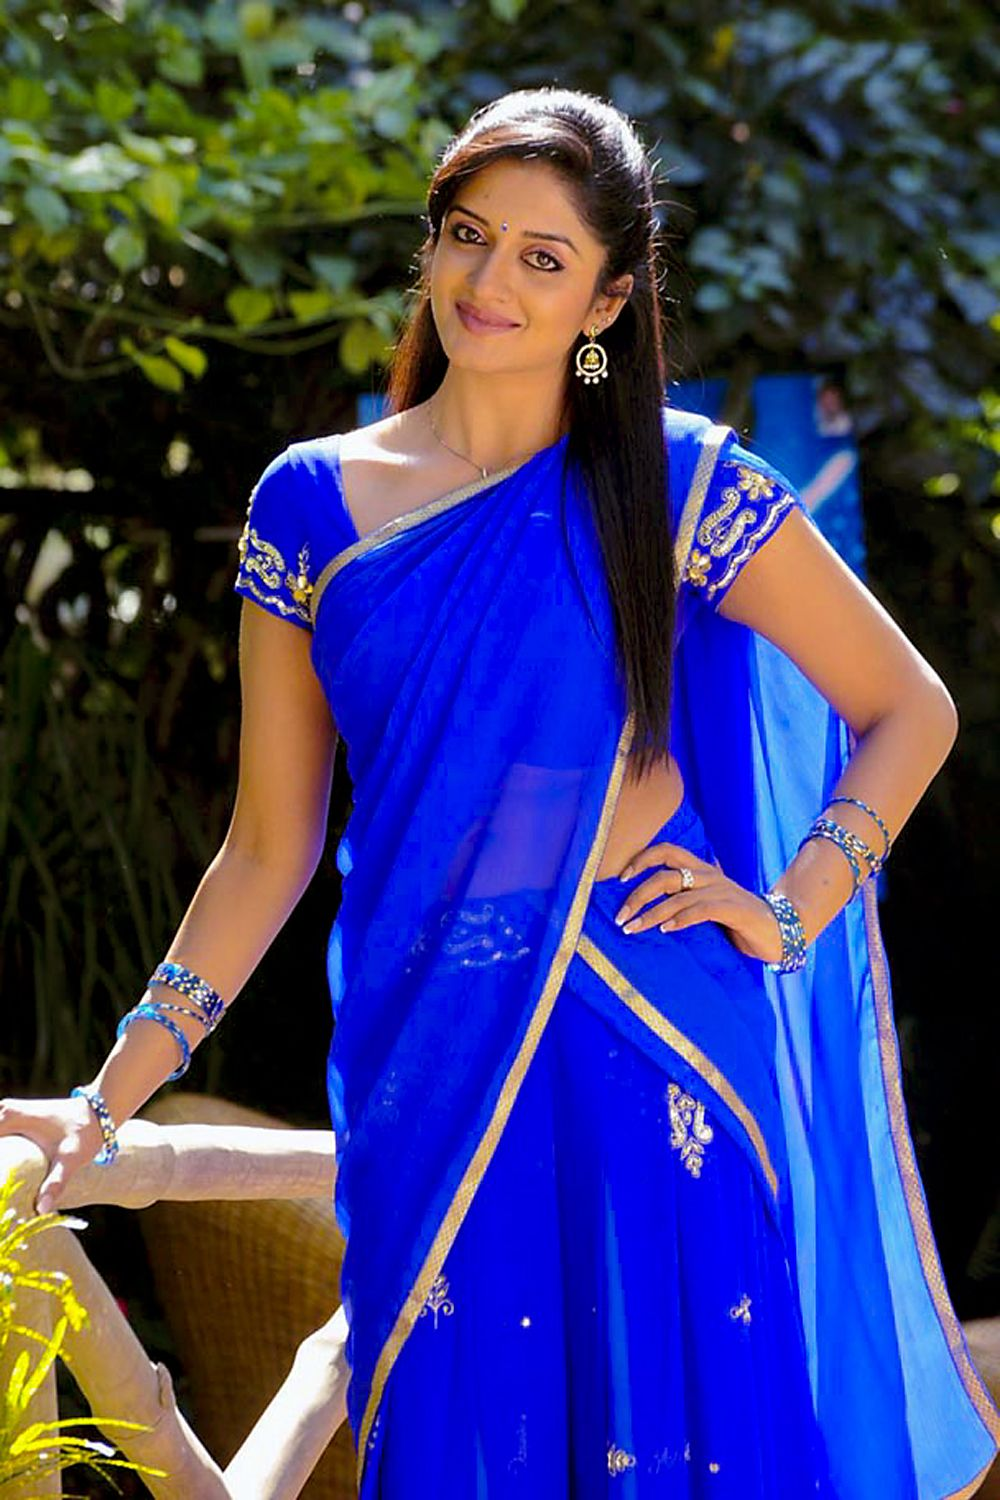 Hd Film Gallery All Film Images Hd Quality Vimala Raman In Blue Saree High Quality New Film